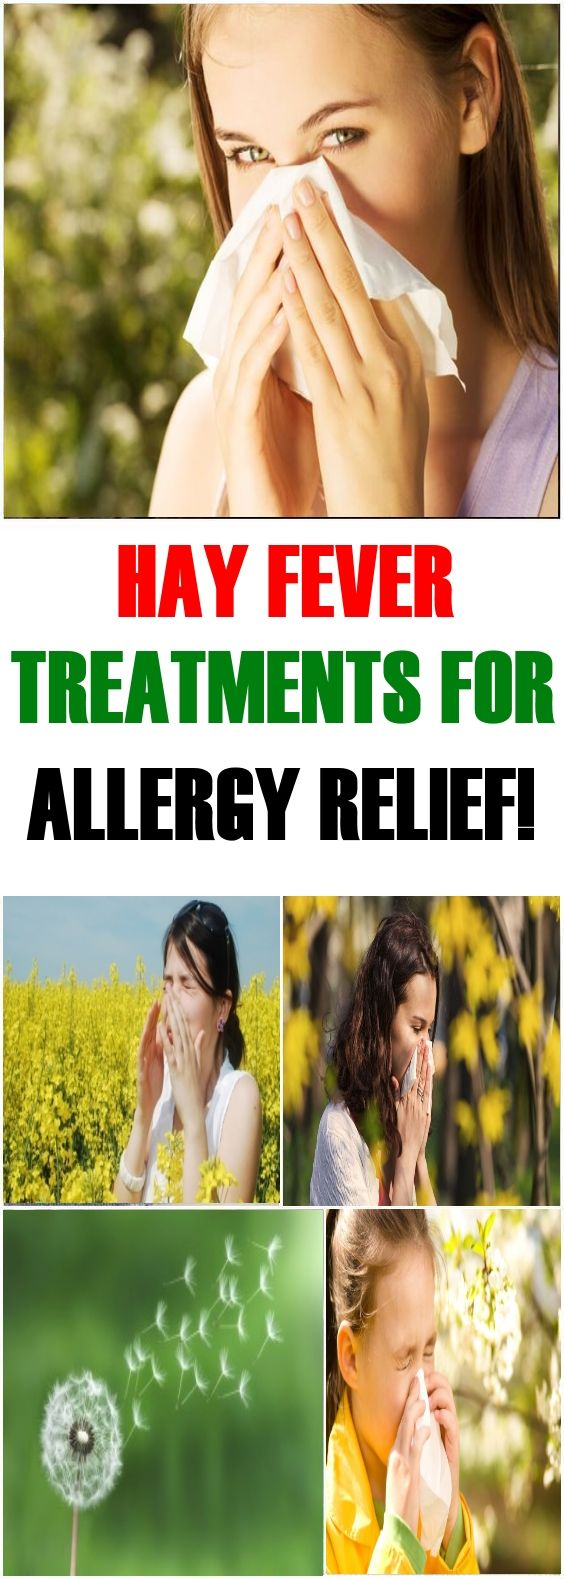 Hay Fever Treatments For Allergy Relief!